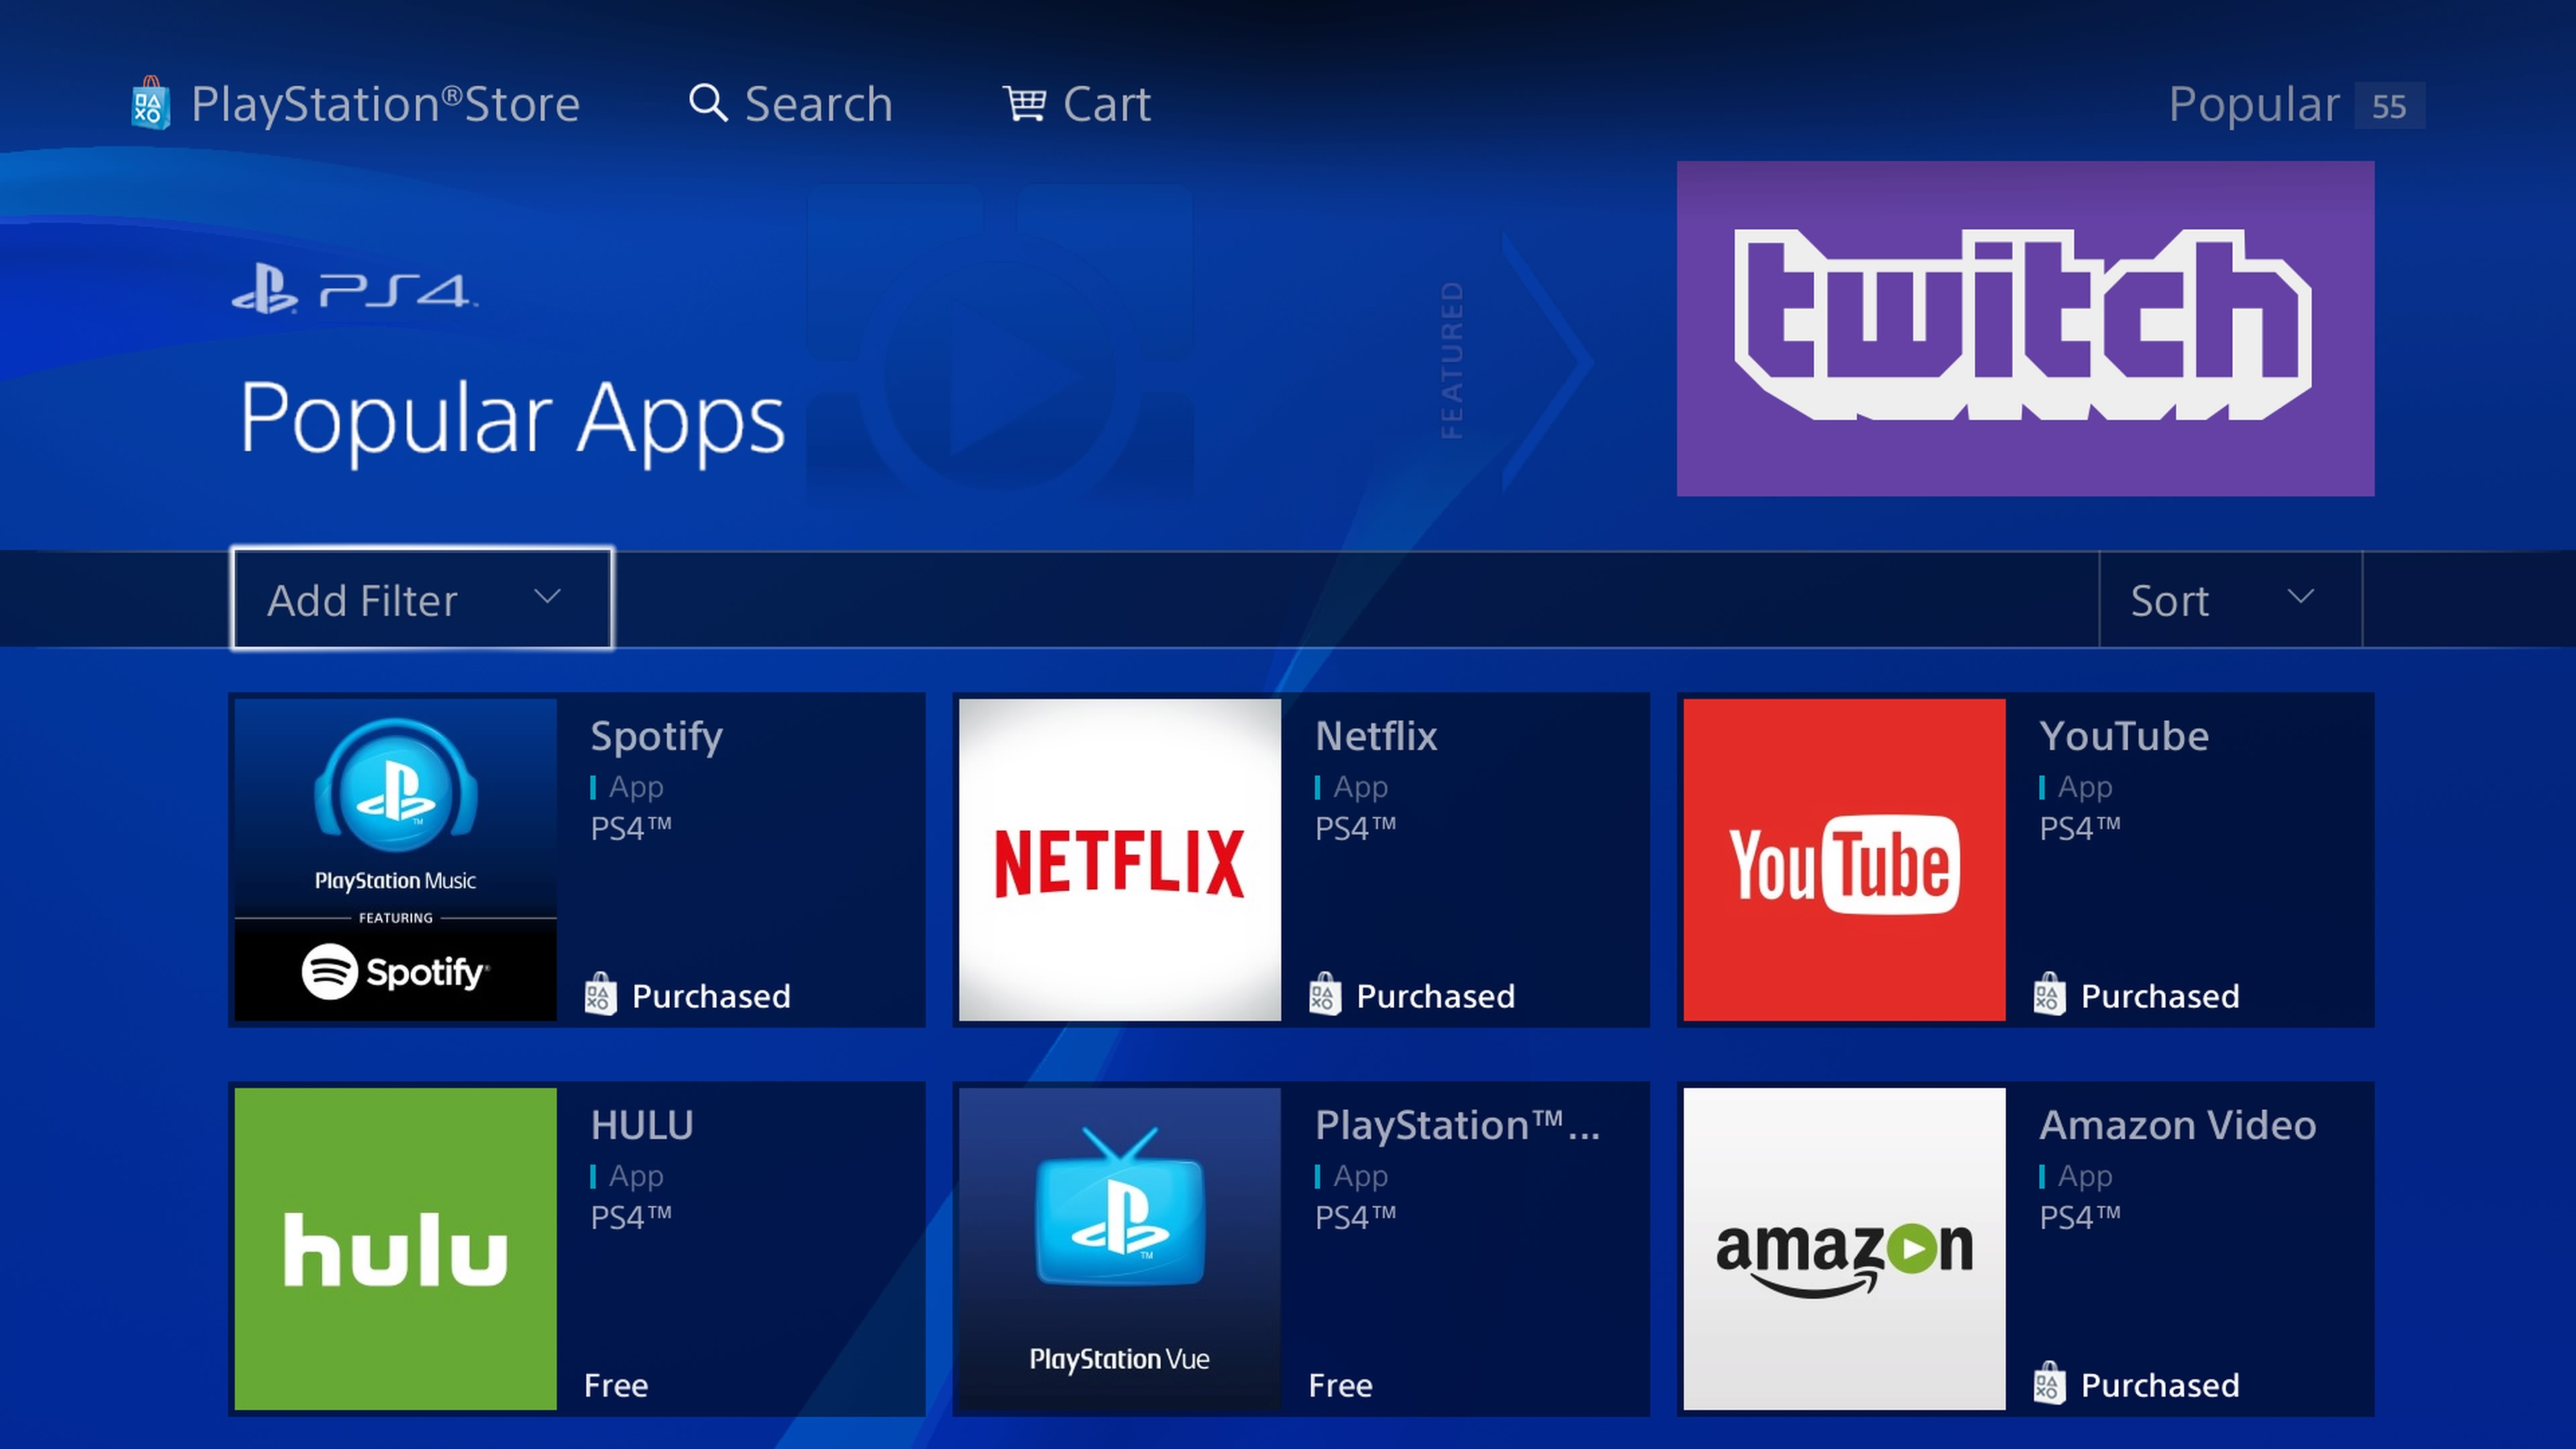 PS4 video streaming services